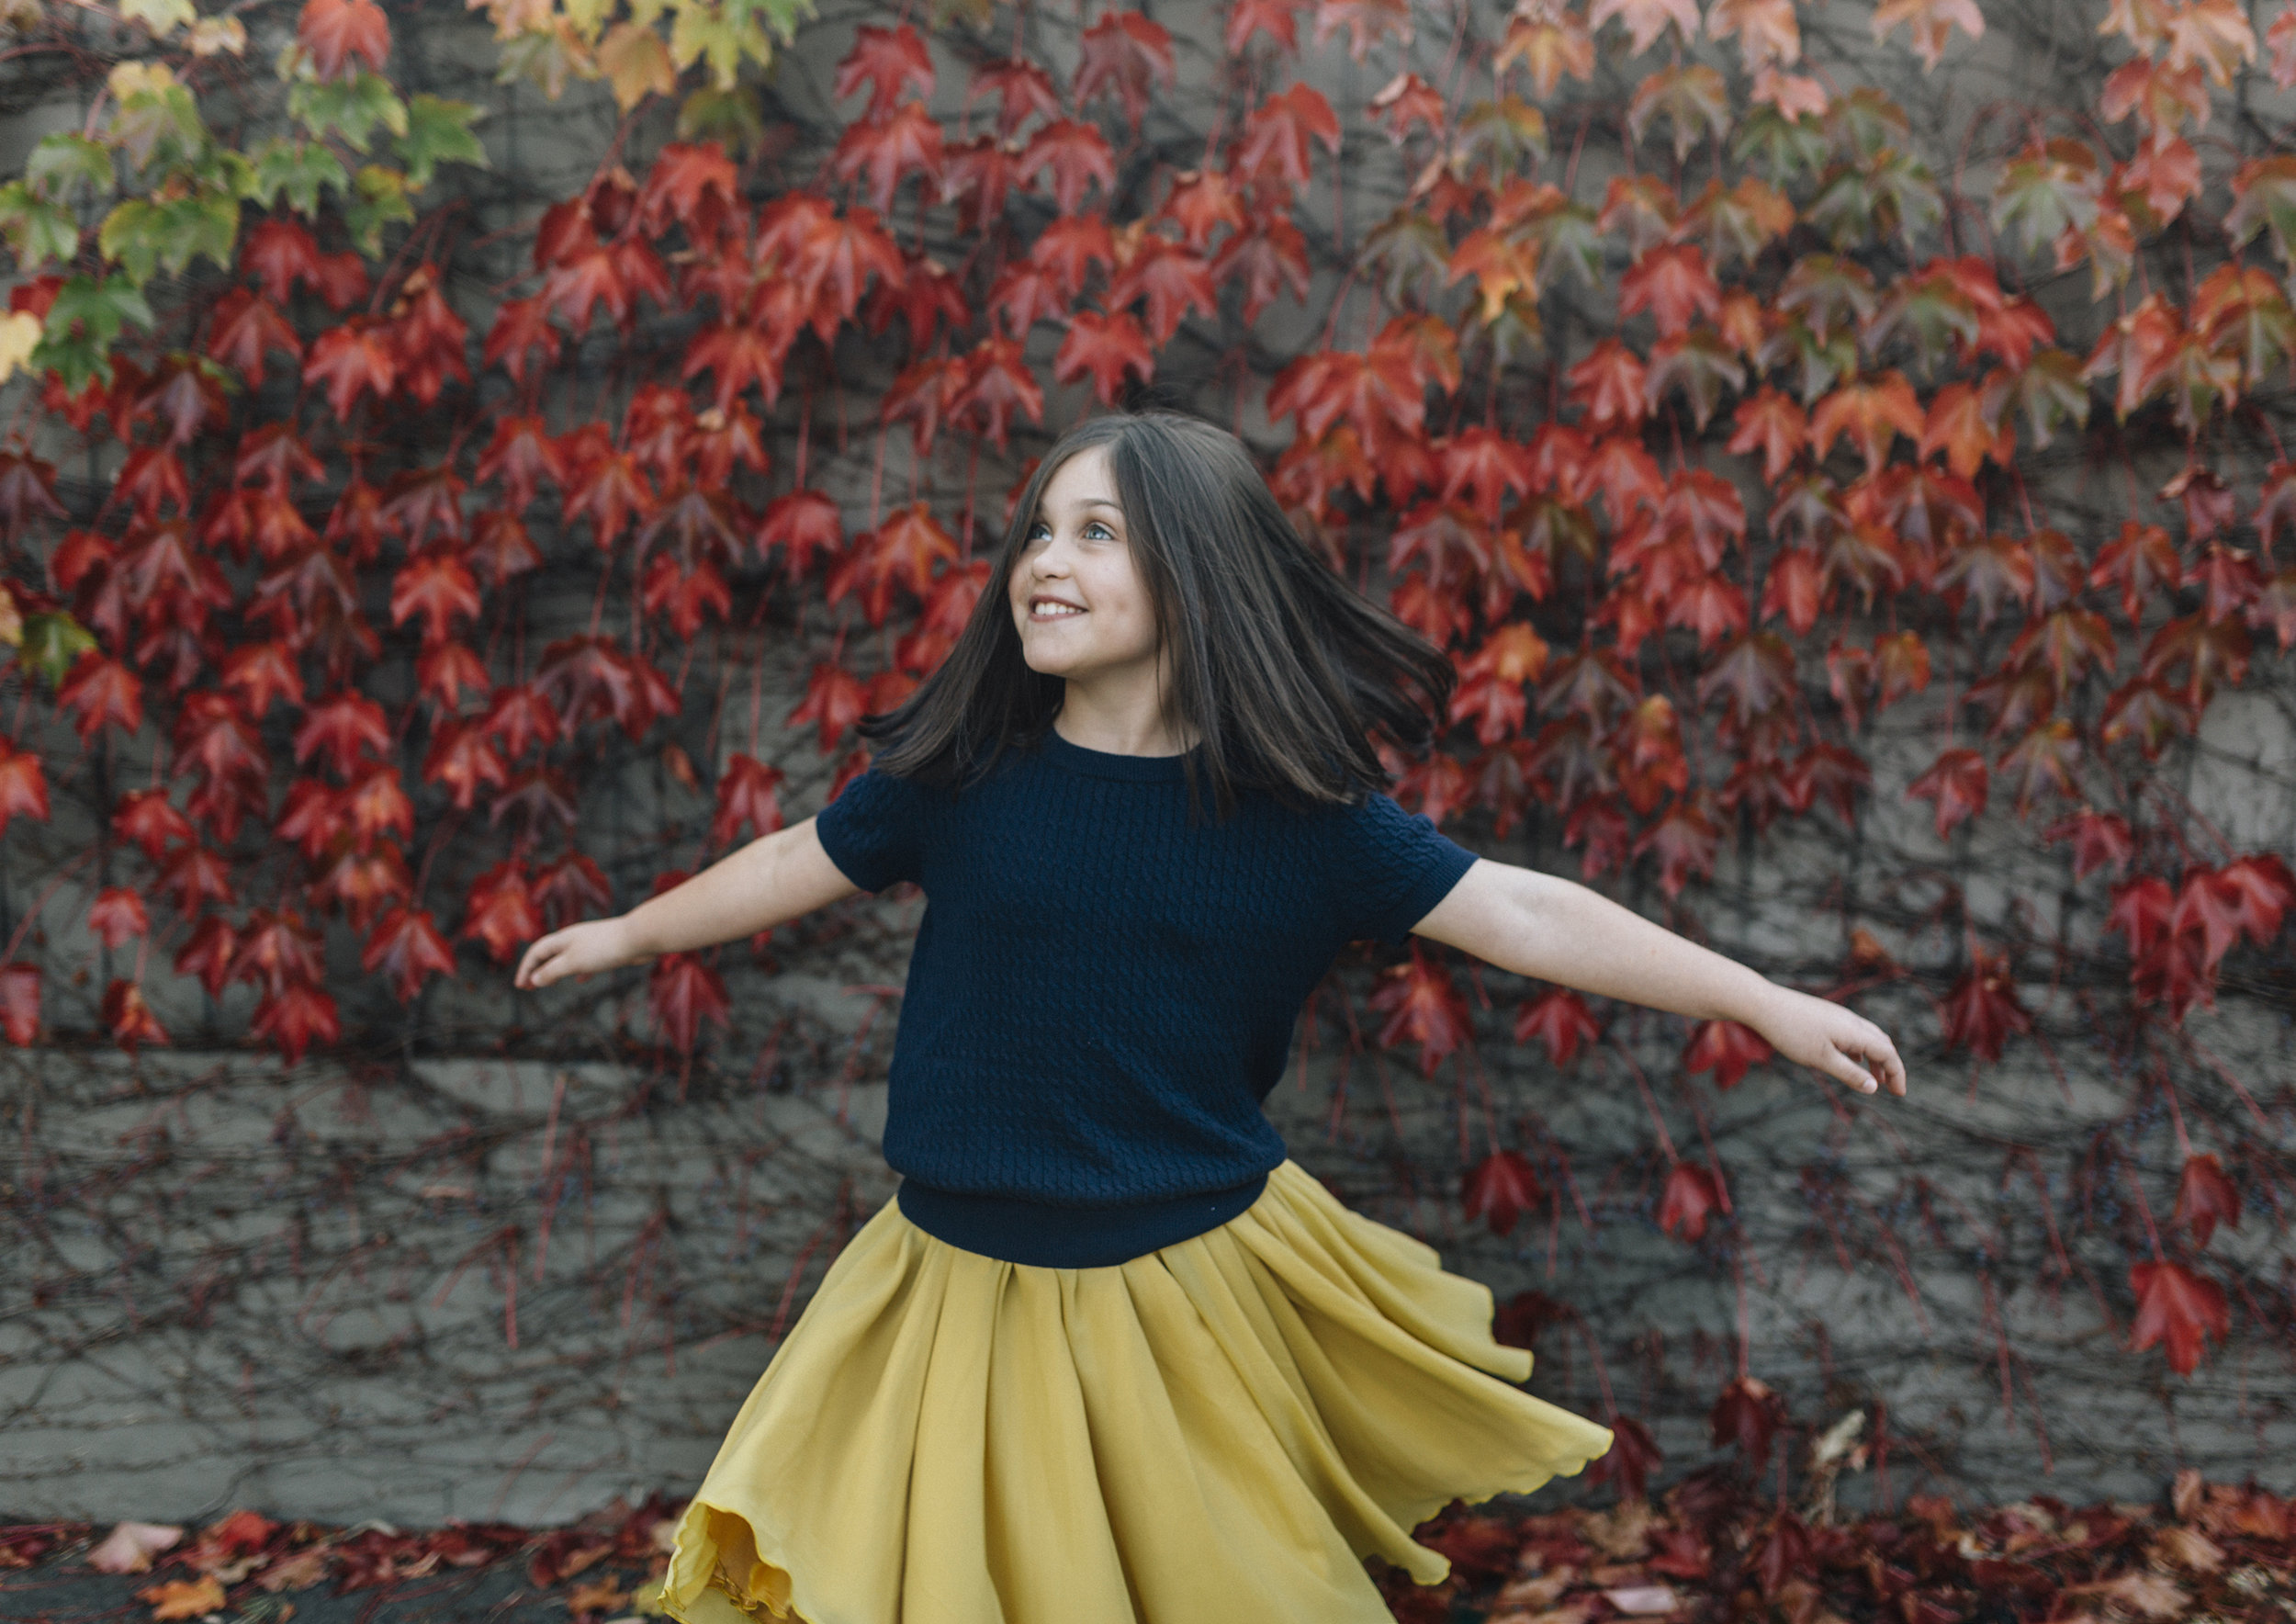 Young tween girl dancing amongst the Autumn leaves